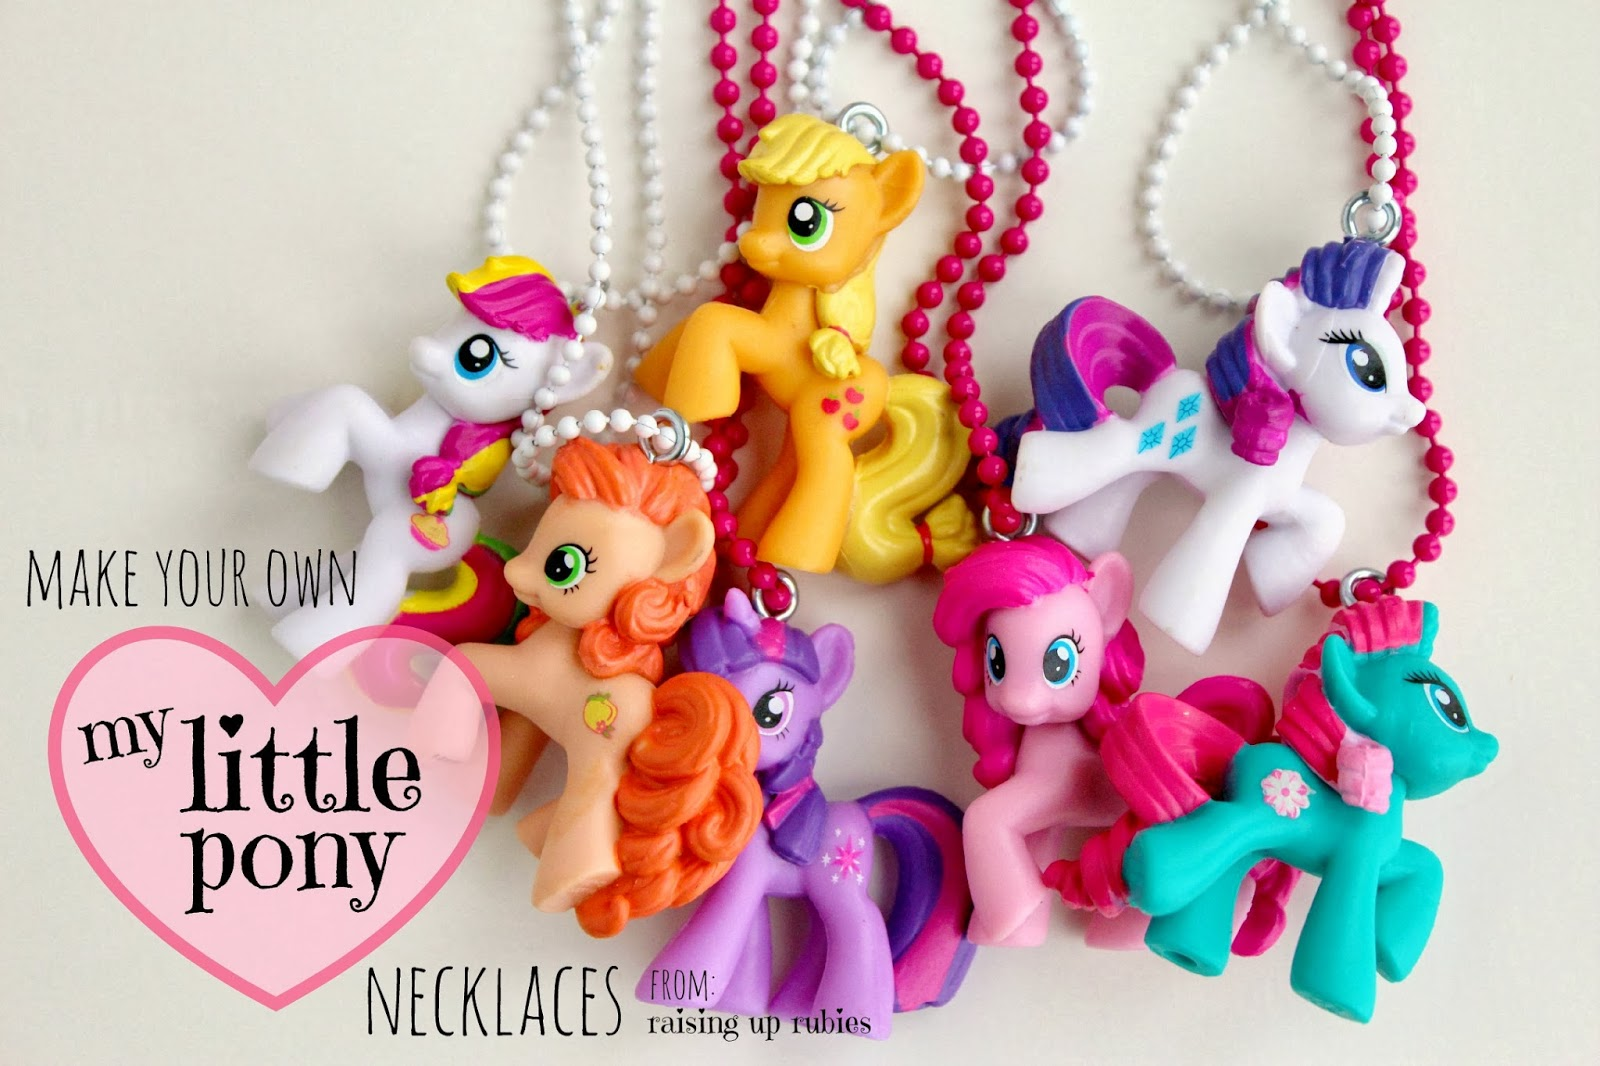 Diy my little pony necklaces raising up rubies bloglovin diy my little pony necklaces mozeypictures Images